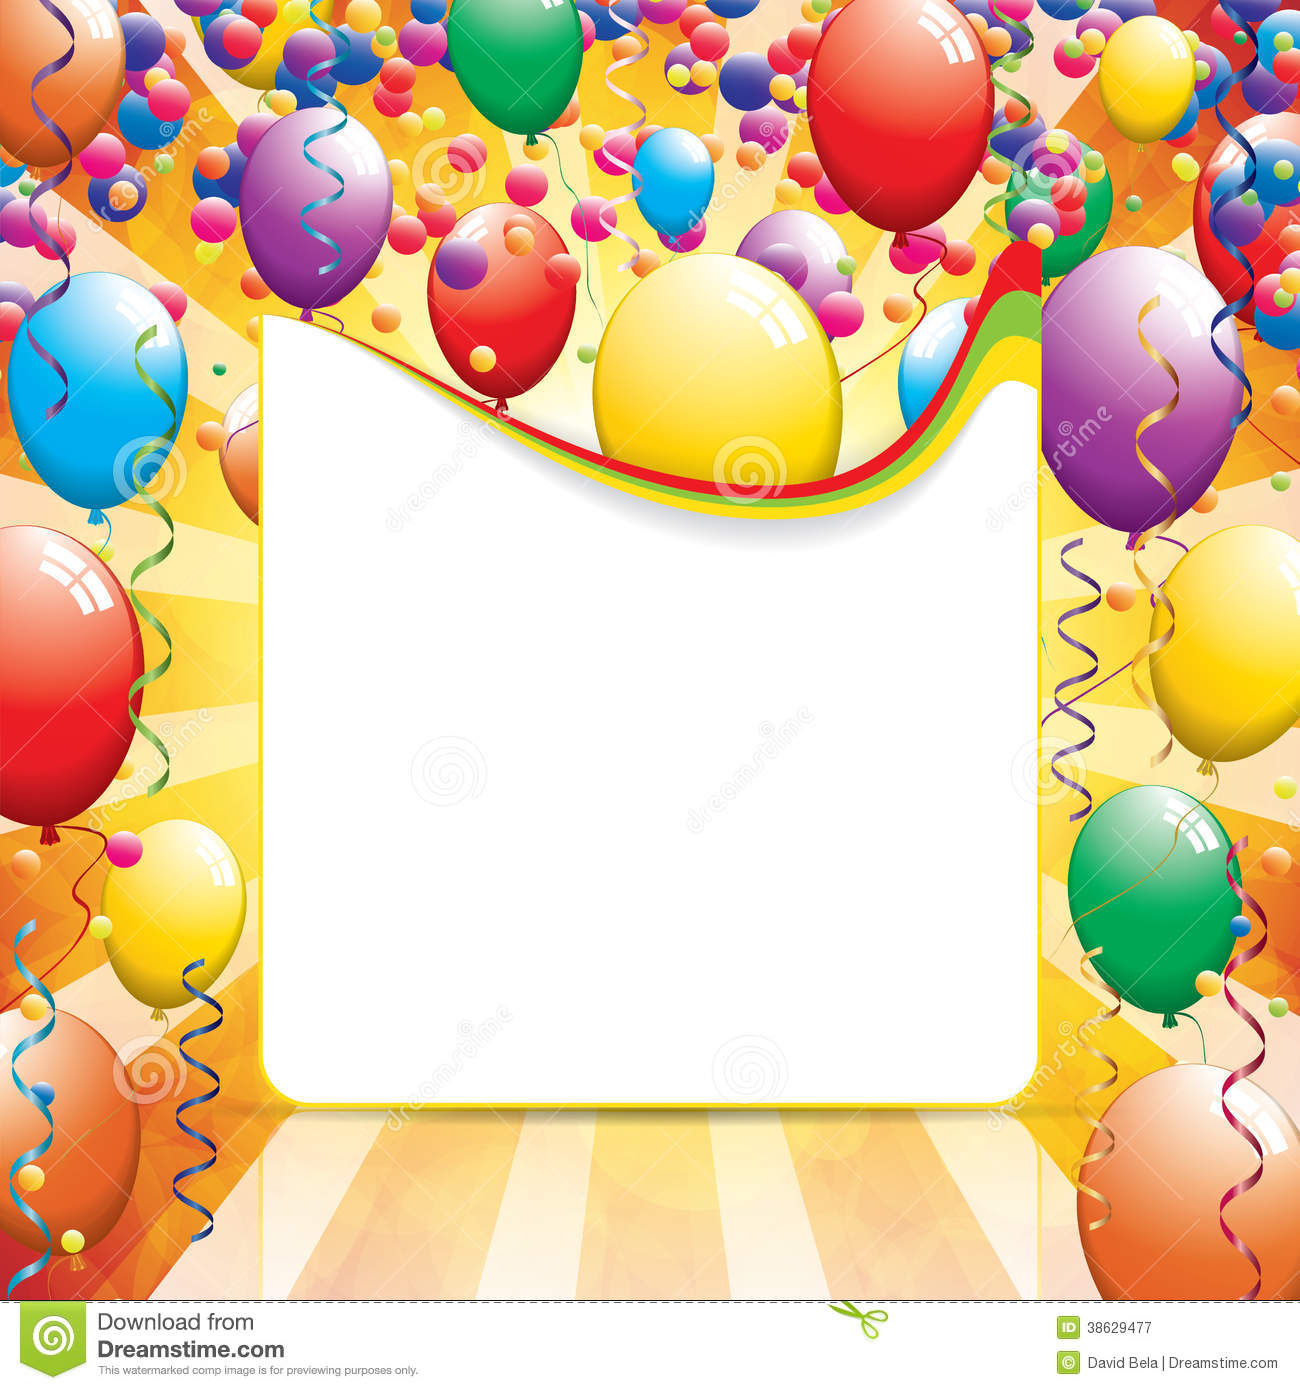 Royalty Free Birthday Images ~ Birthday background royalty free stock photography image